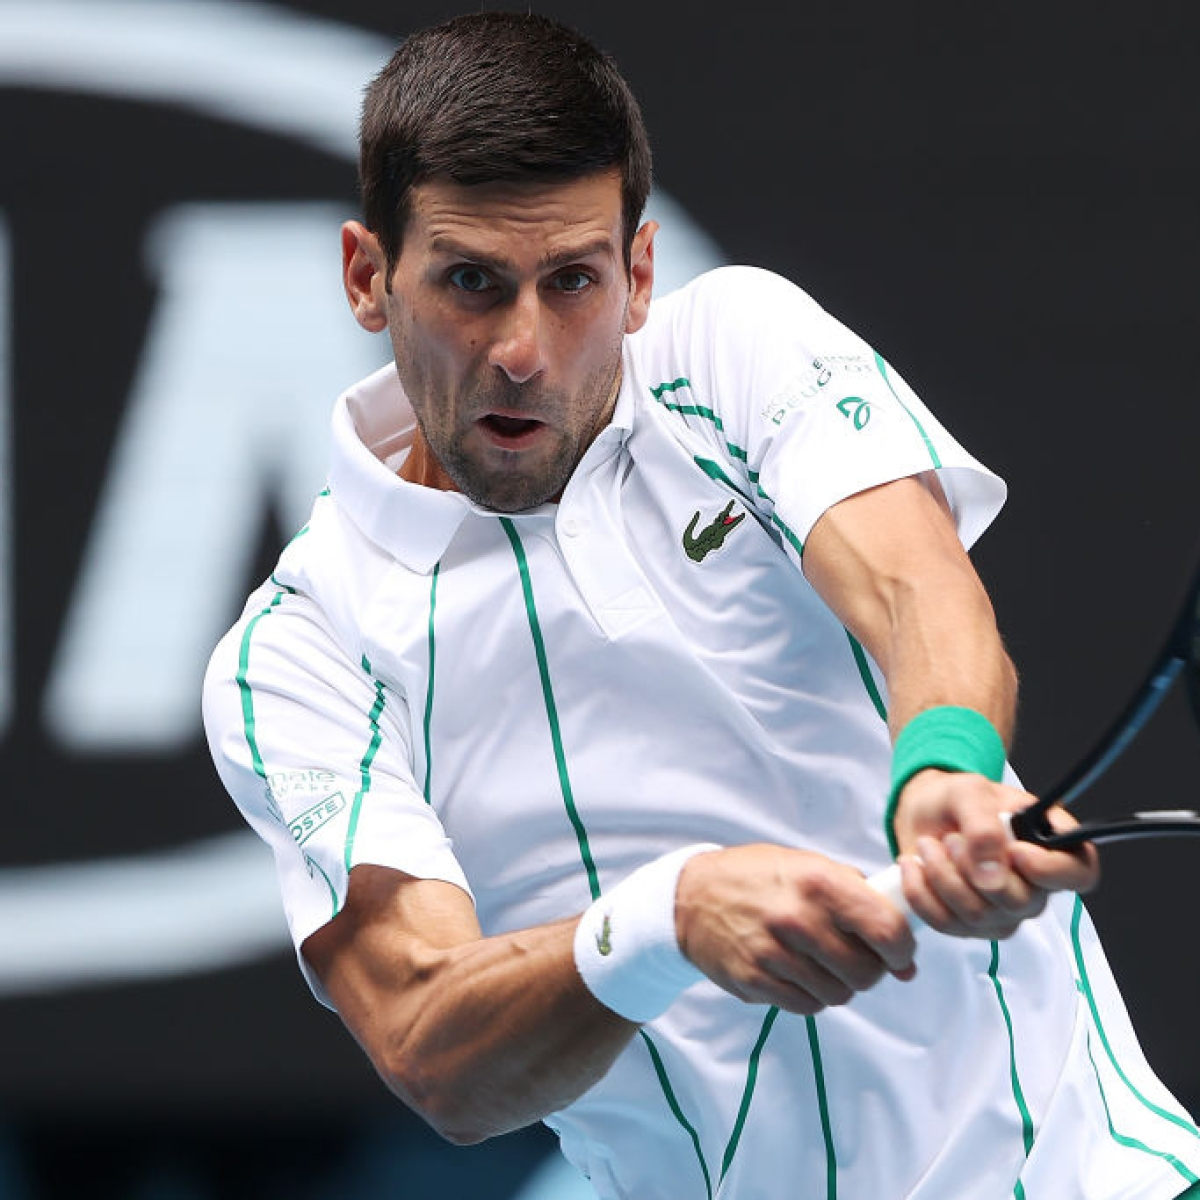 Australia Open: Novak Djokovic breezes past Tatsuma Ito, enters third round